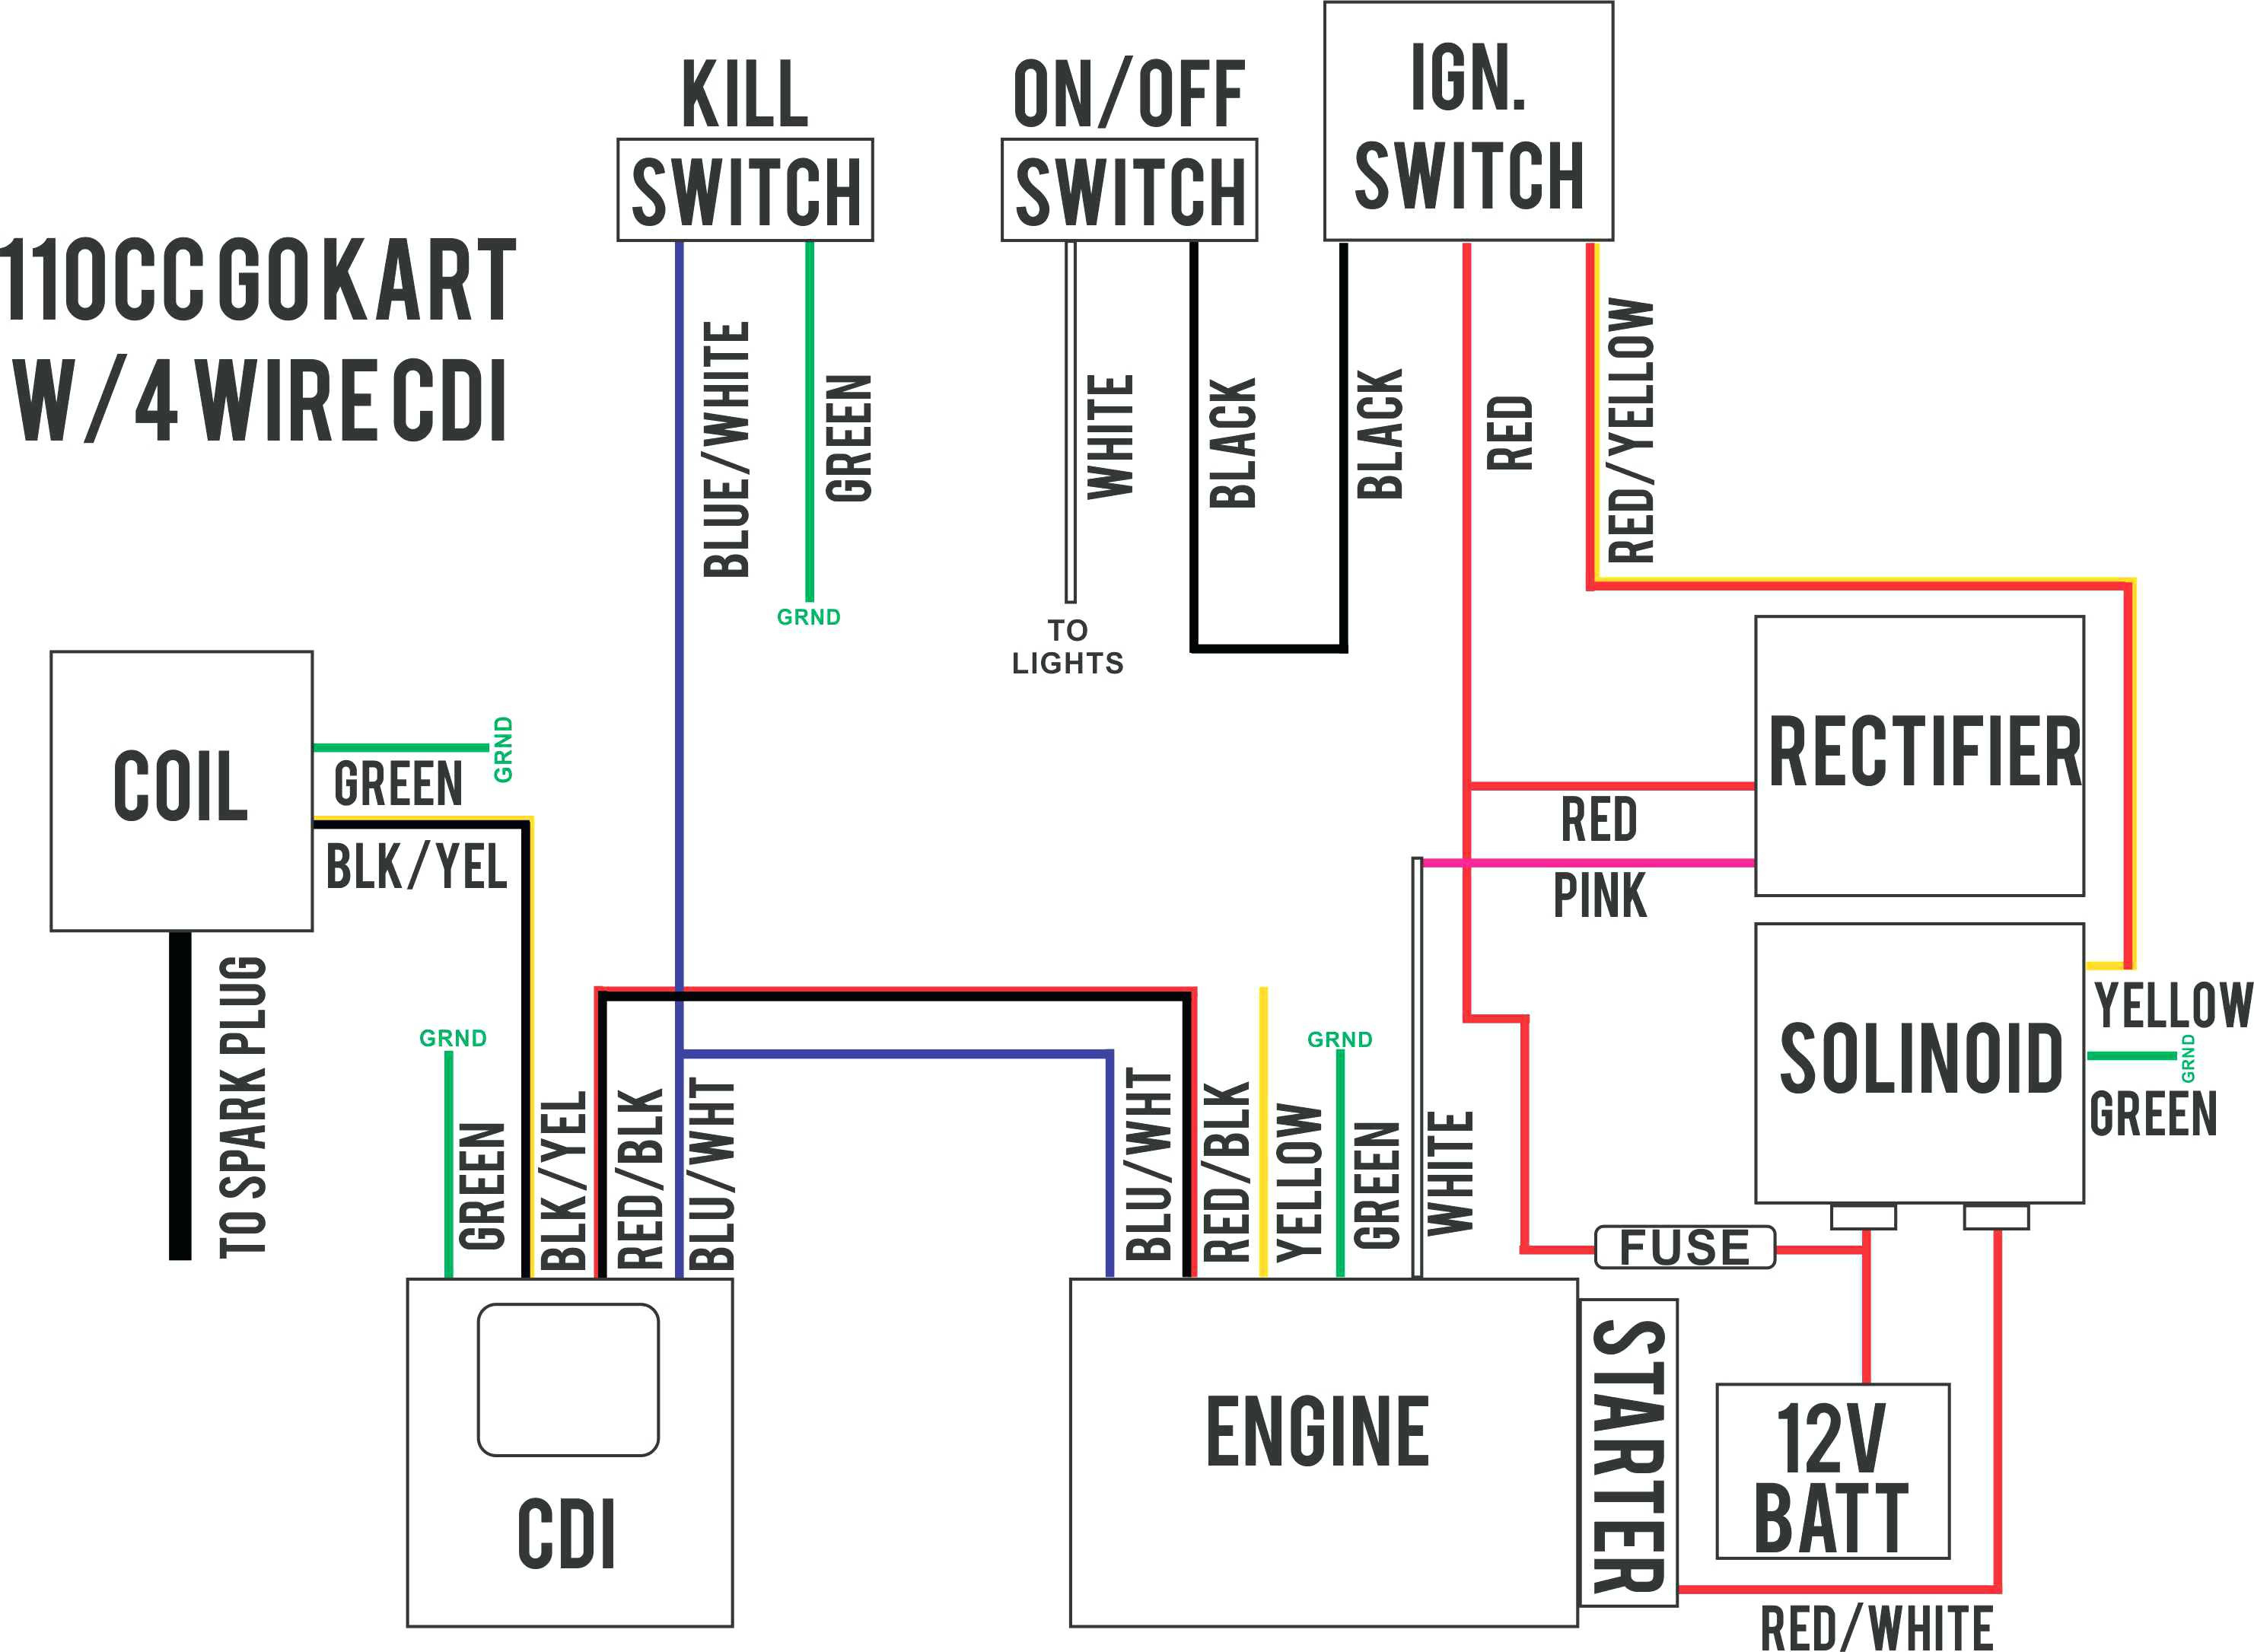 WRG-3749] Hawk Car Alarm Wiring Diagram on